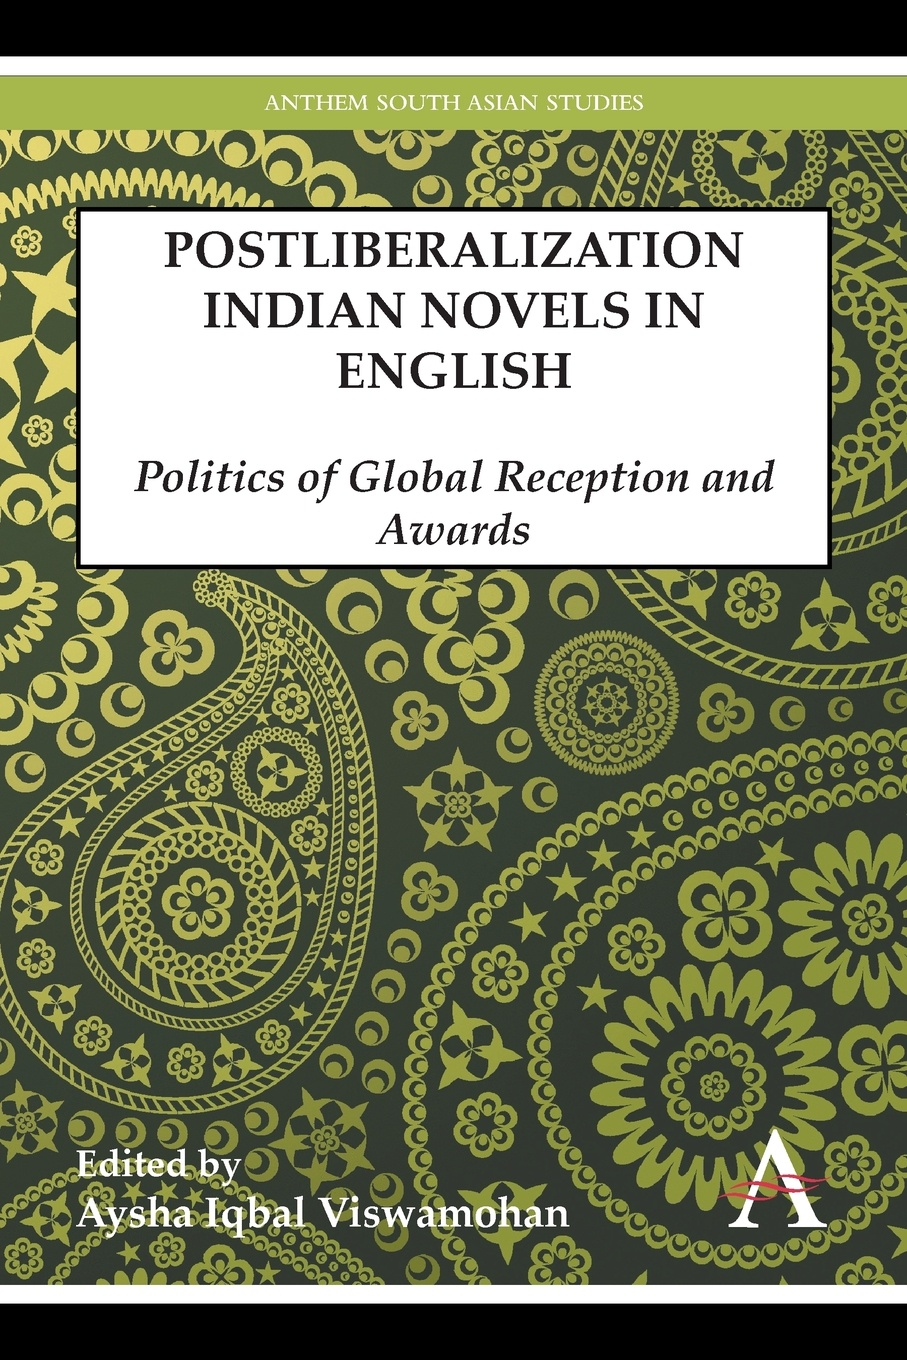 Postliberalization Indian Novels in English. Politics of Global Reception and Awards